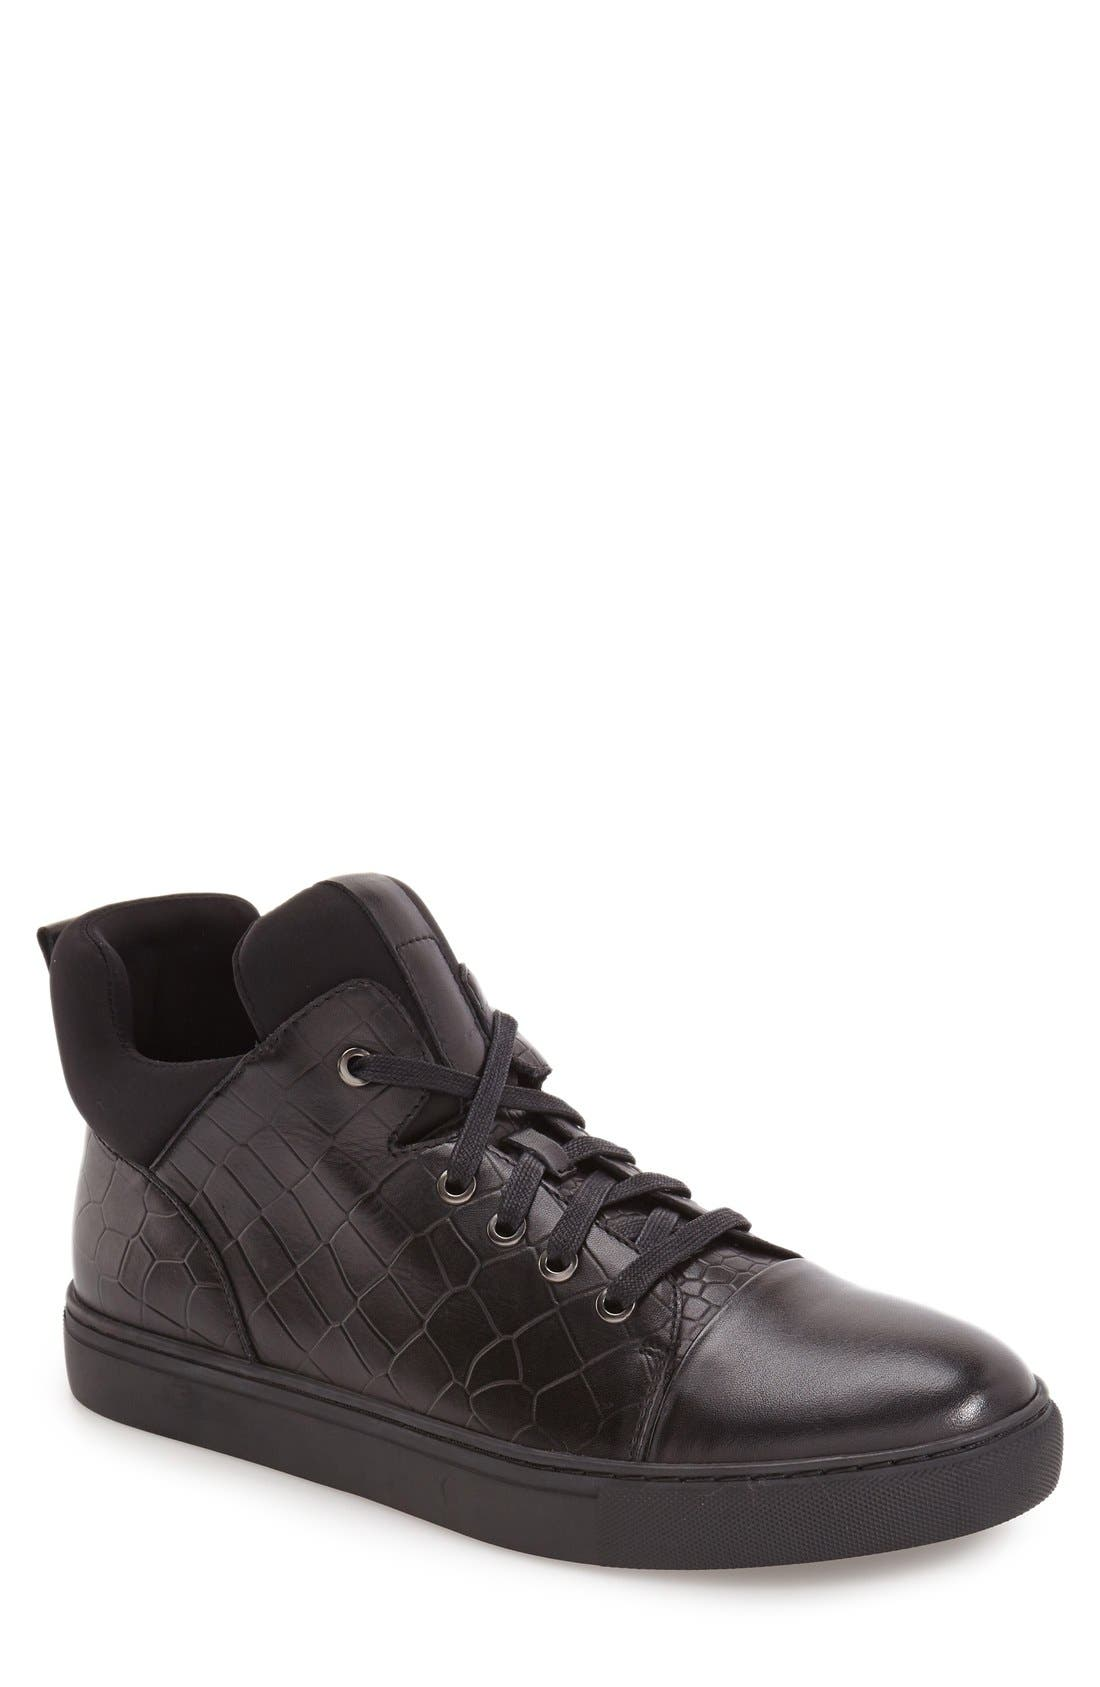 'Remix' High Top Sneaker,                             Main thumbnail 1, color,                             001